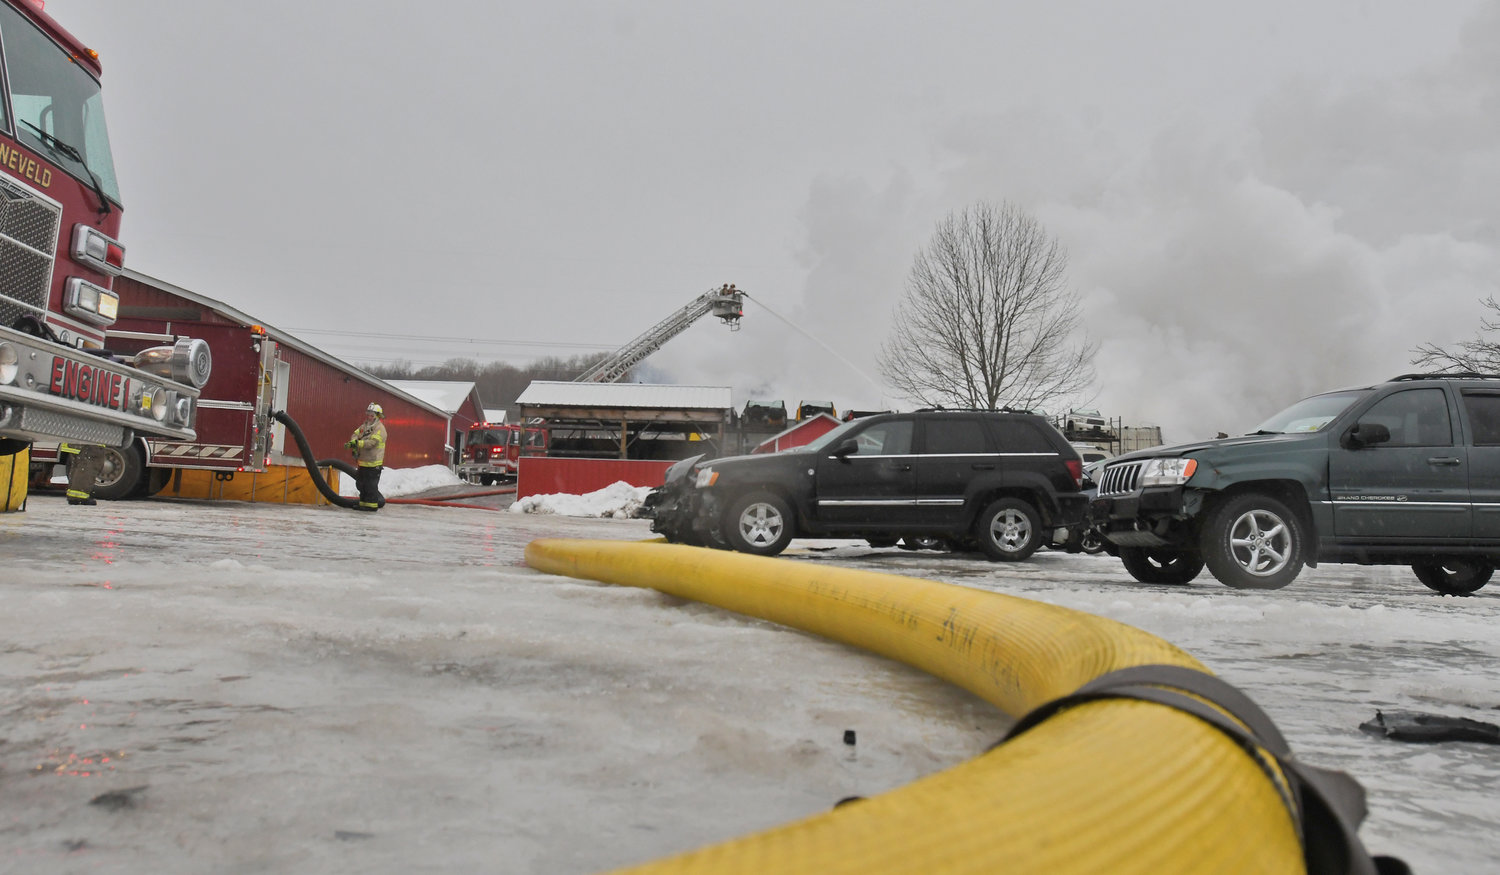 WATER EVERYWHERE — Firefighters fill up a portable pond at the scene of a large fire at Tolpa's Auto Parts on French Road in Steuben Wednesday afternoon. Water had to be tankered to the scene from multiple fill sites, while crews also slogged through freezing rain.